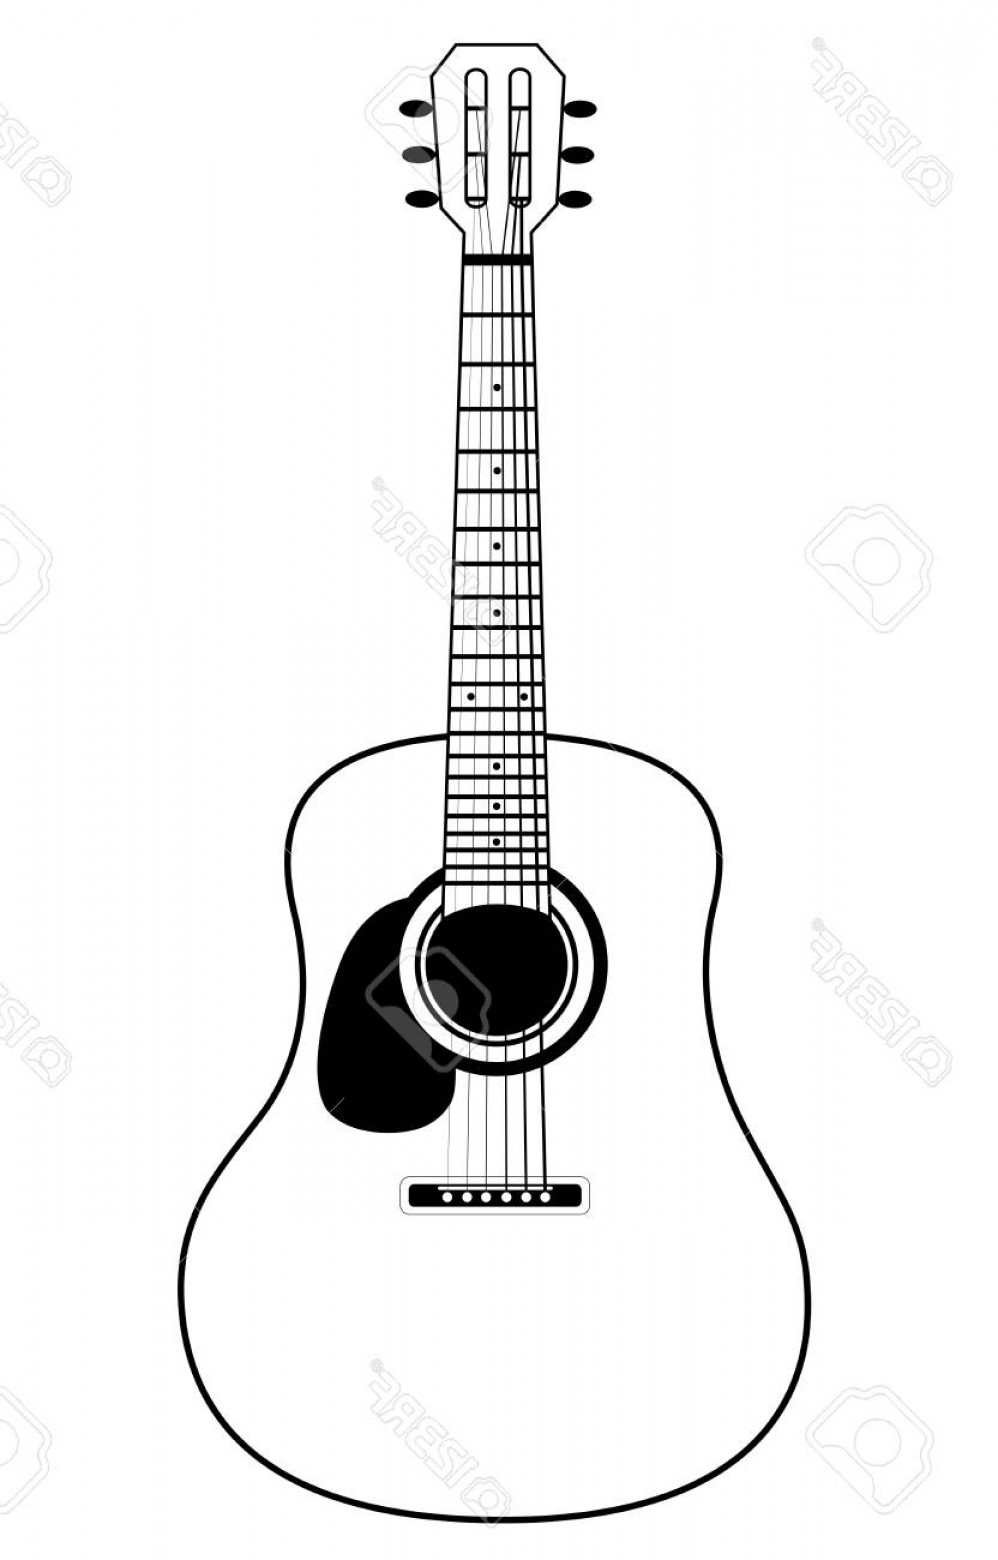 Vector Guitar Clip Art Black And White: Photostock Vector Stylized Acoustic Guitar Isolated On A White Background